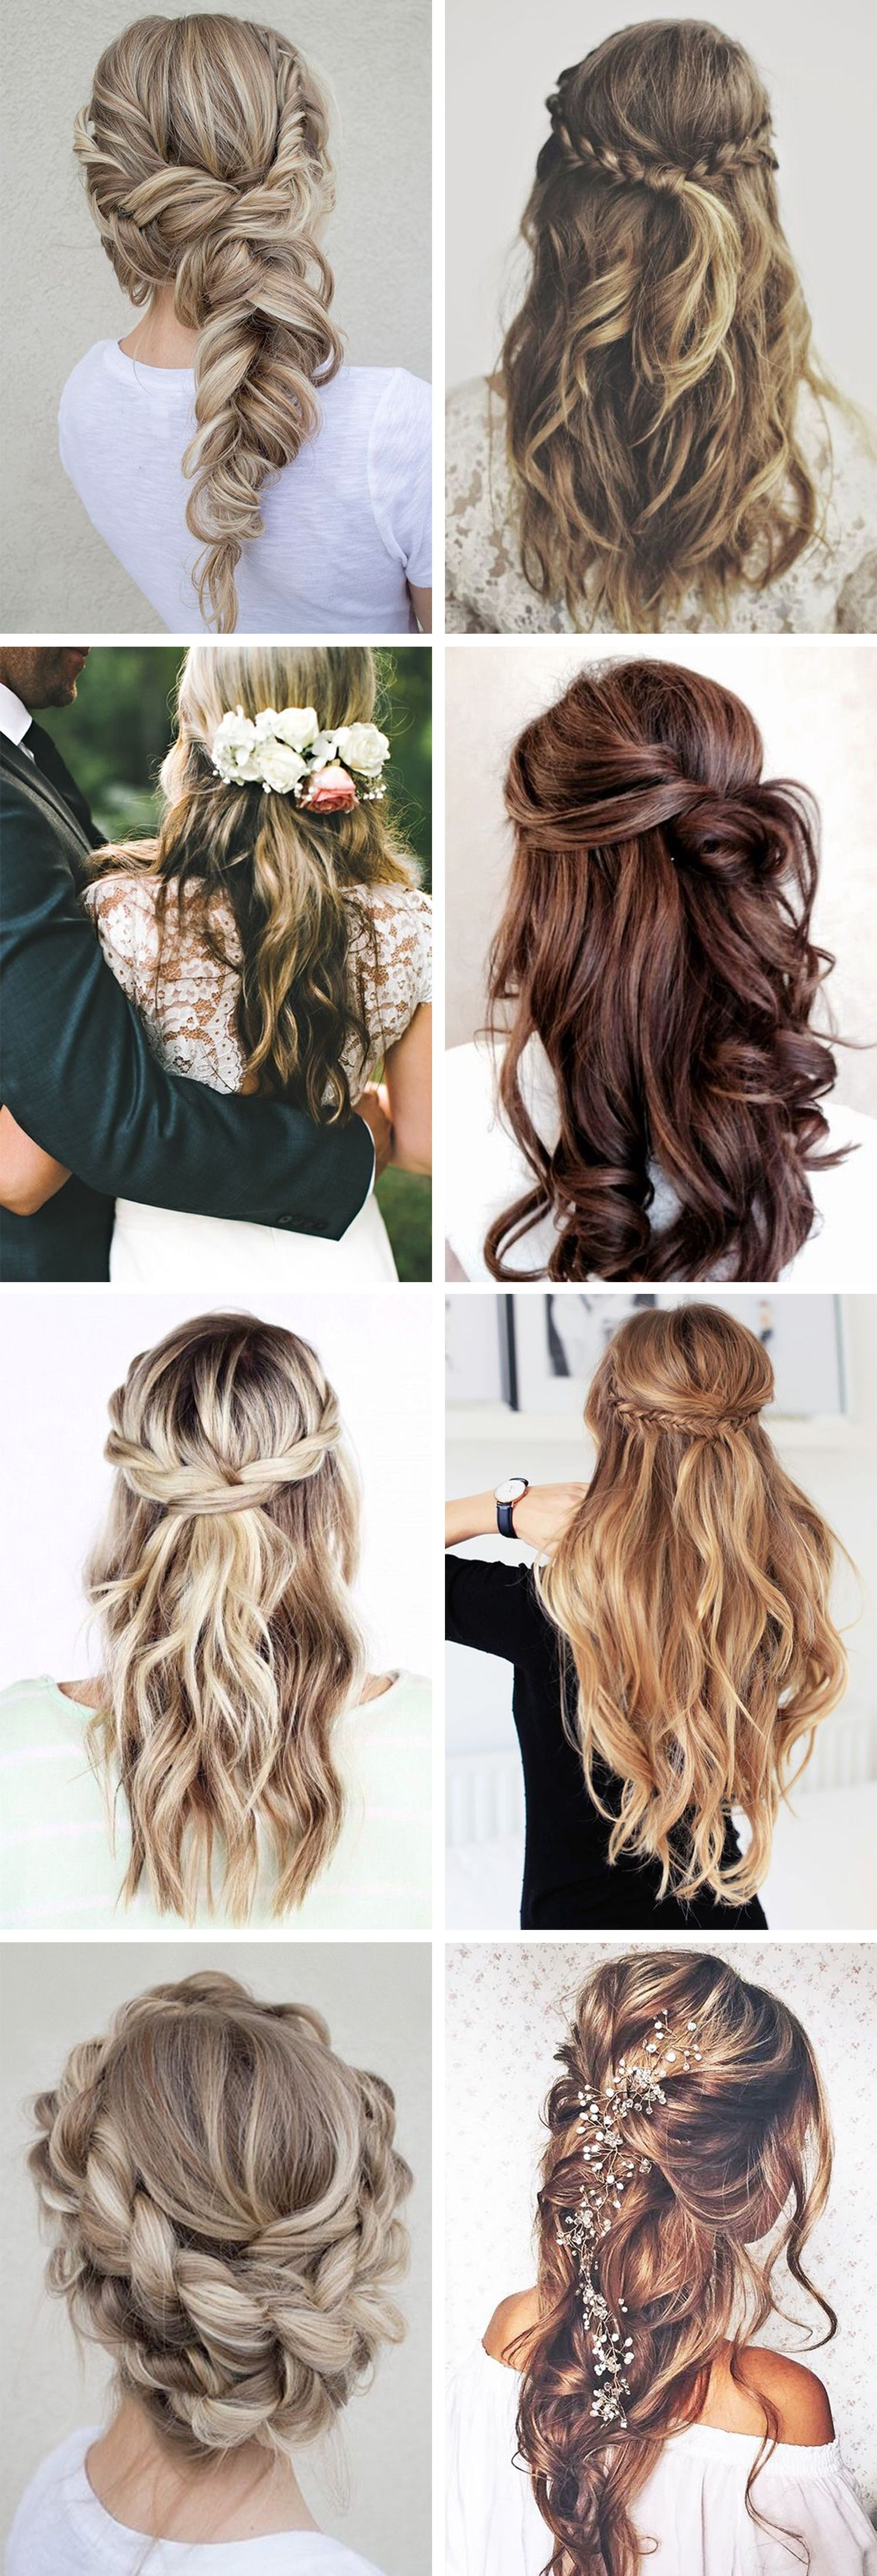 Wedding hair inspiration Christina Dueholm Pinterest